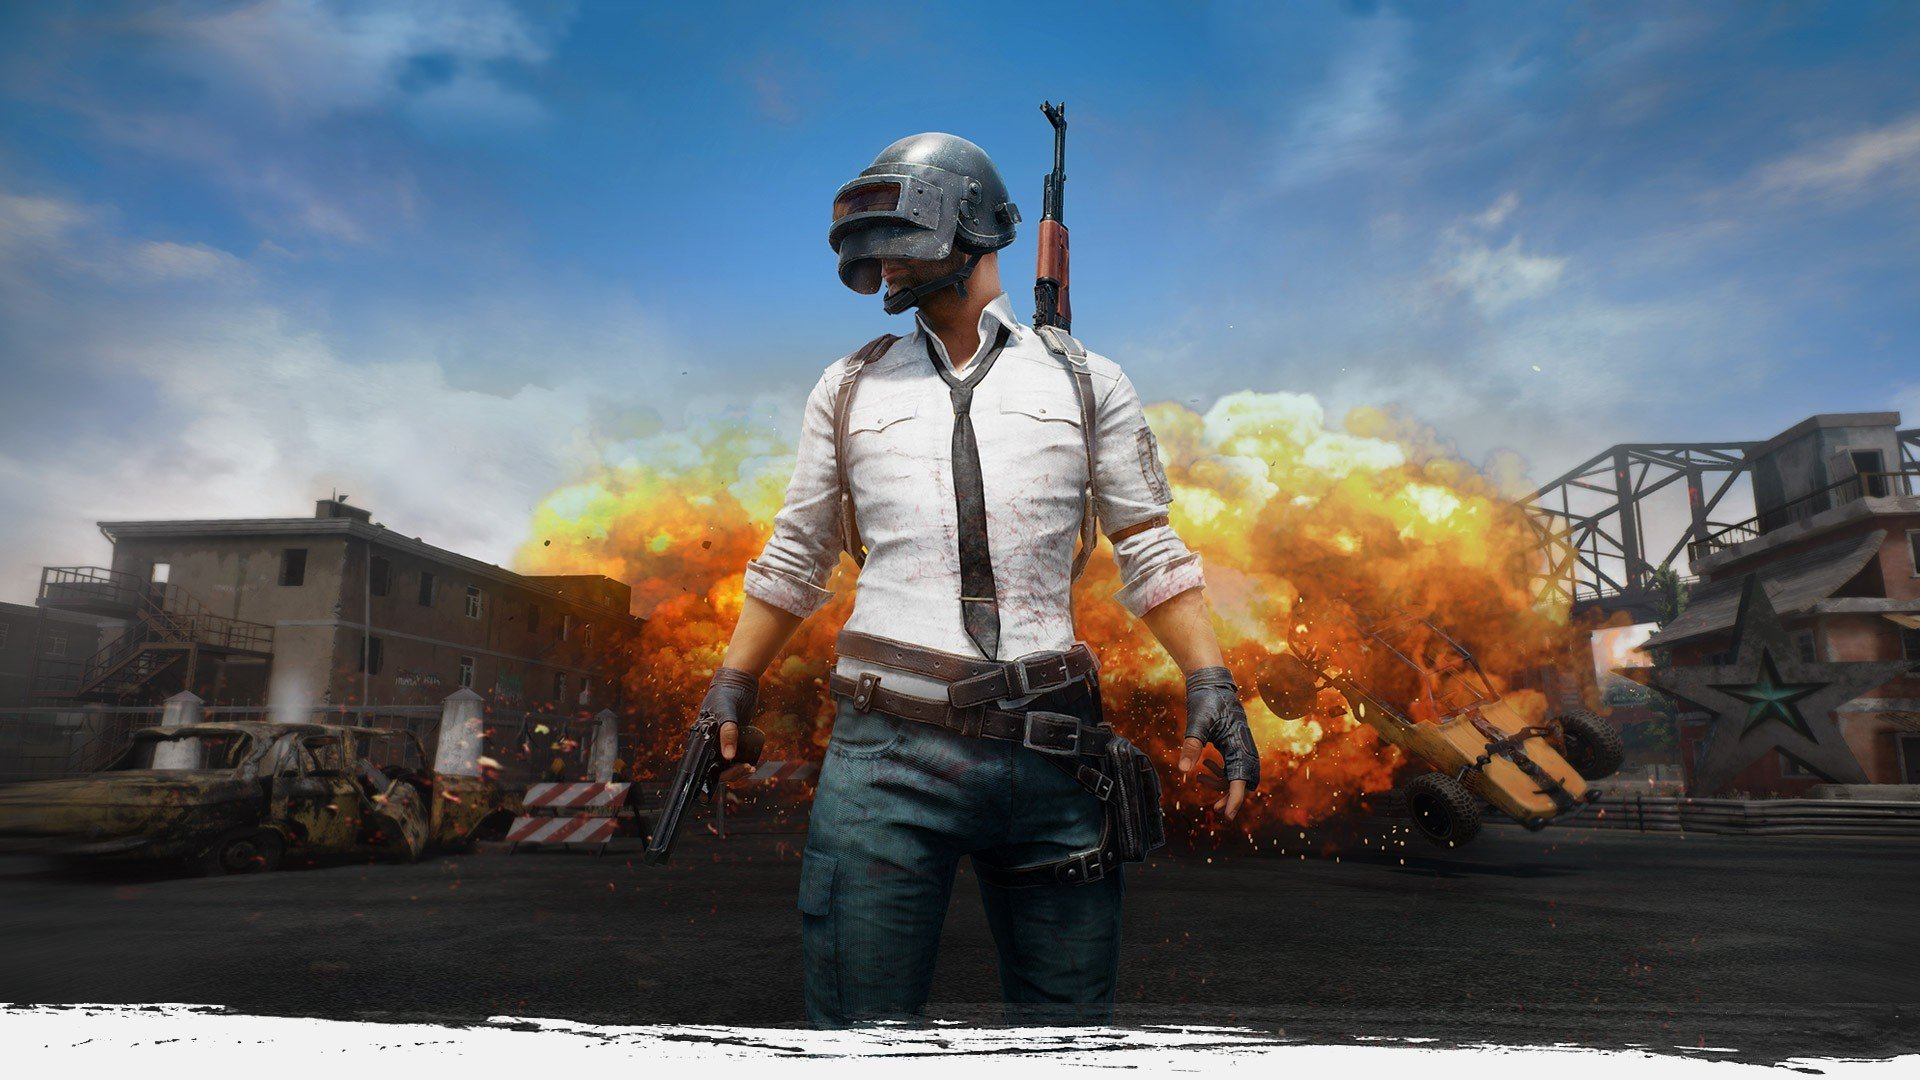 PlayerUnknown's Battlegrounds is the world's most popular